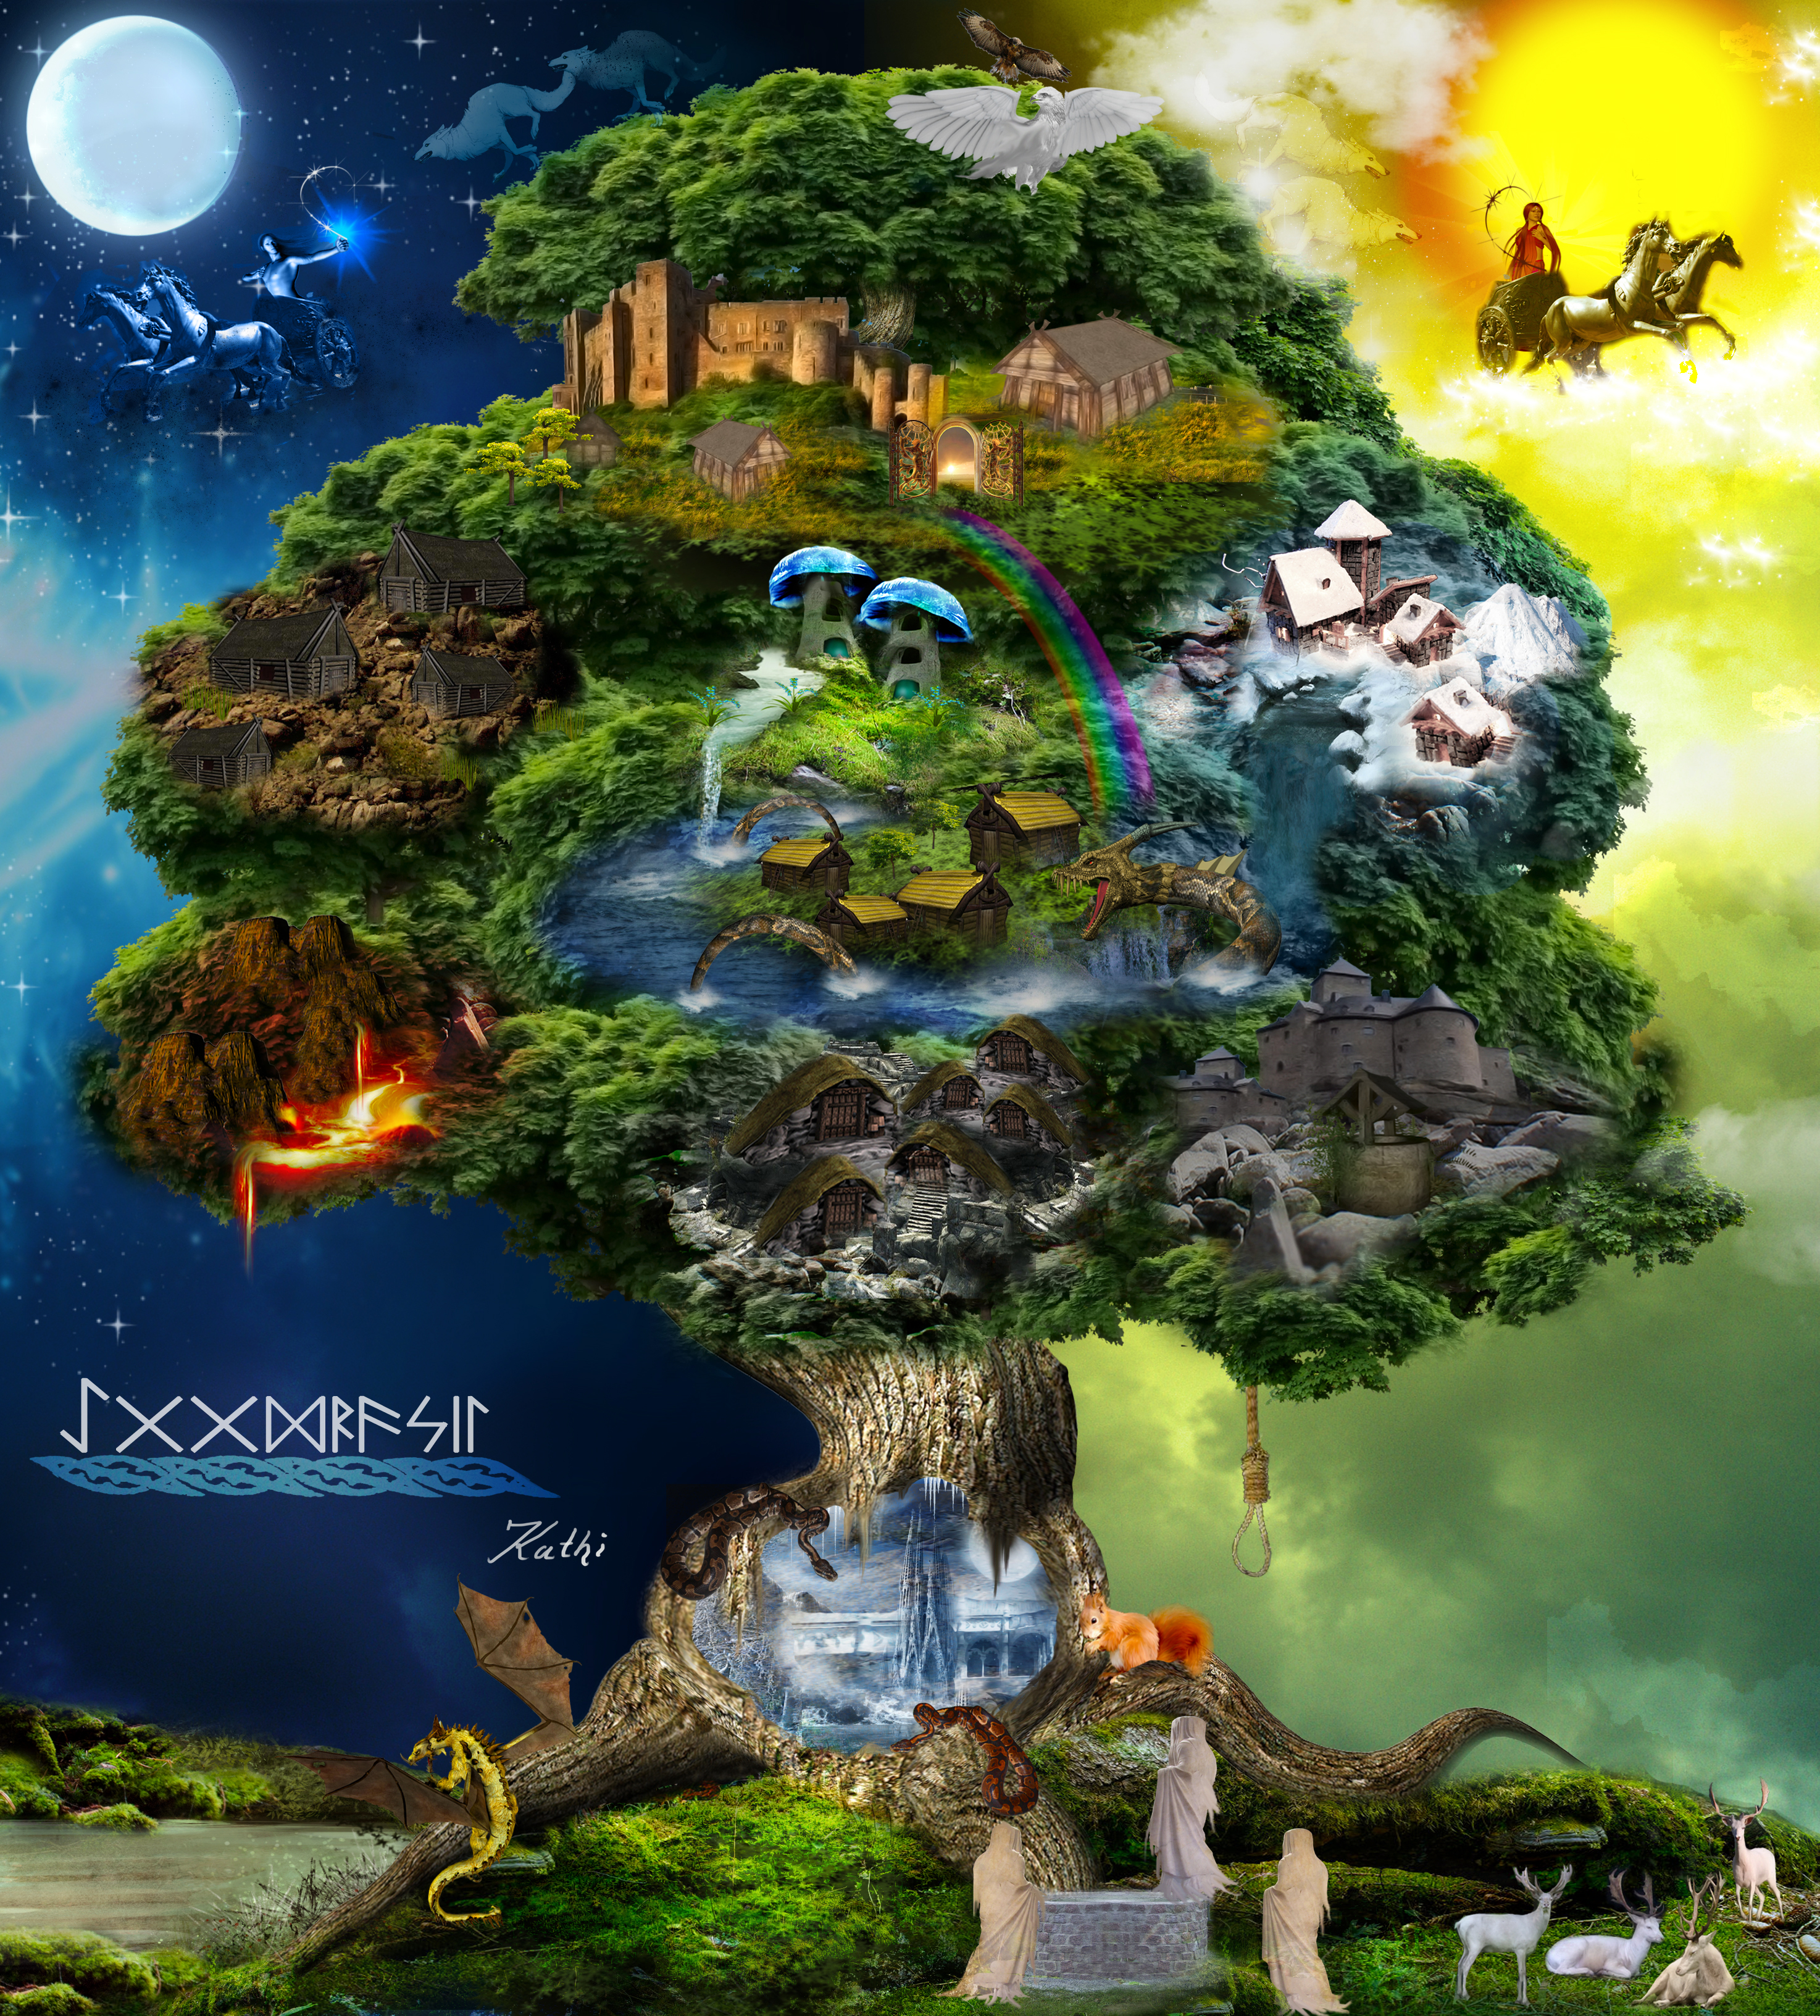 http://fc07.deviantart.net/fs71/f/2012/206/3/8/the_legend_of_yggdrasil_by_kathamausl-d58iv1q.jpg